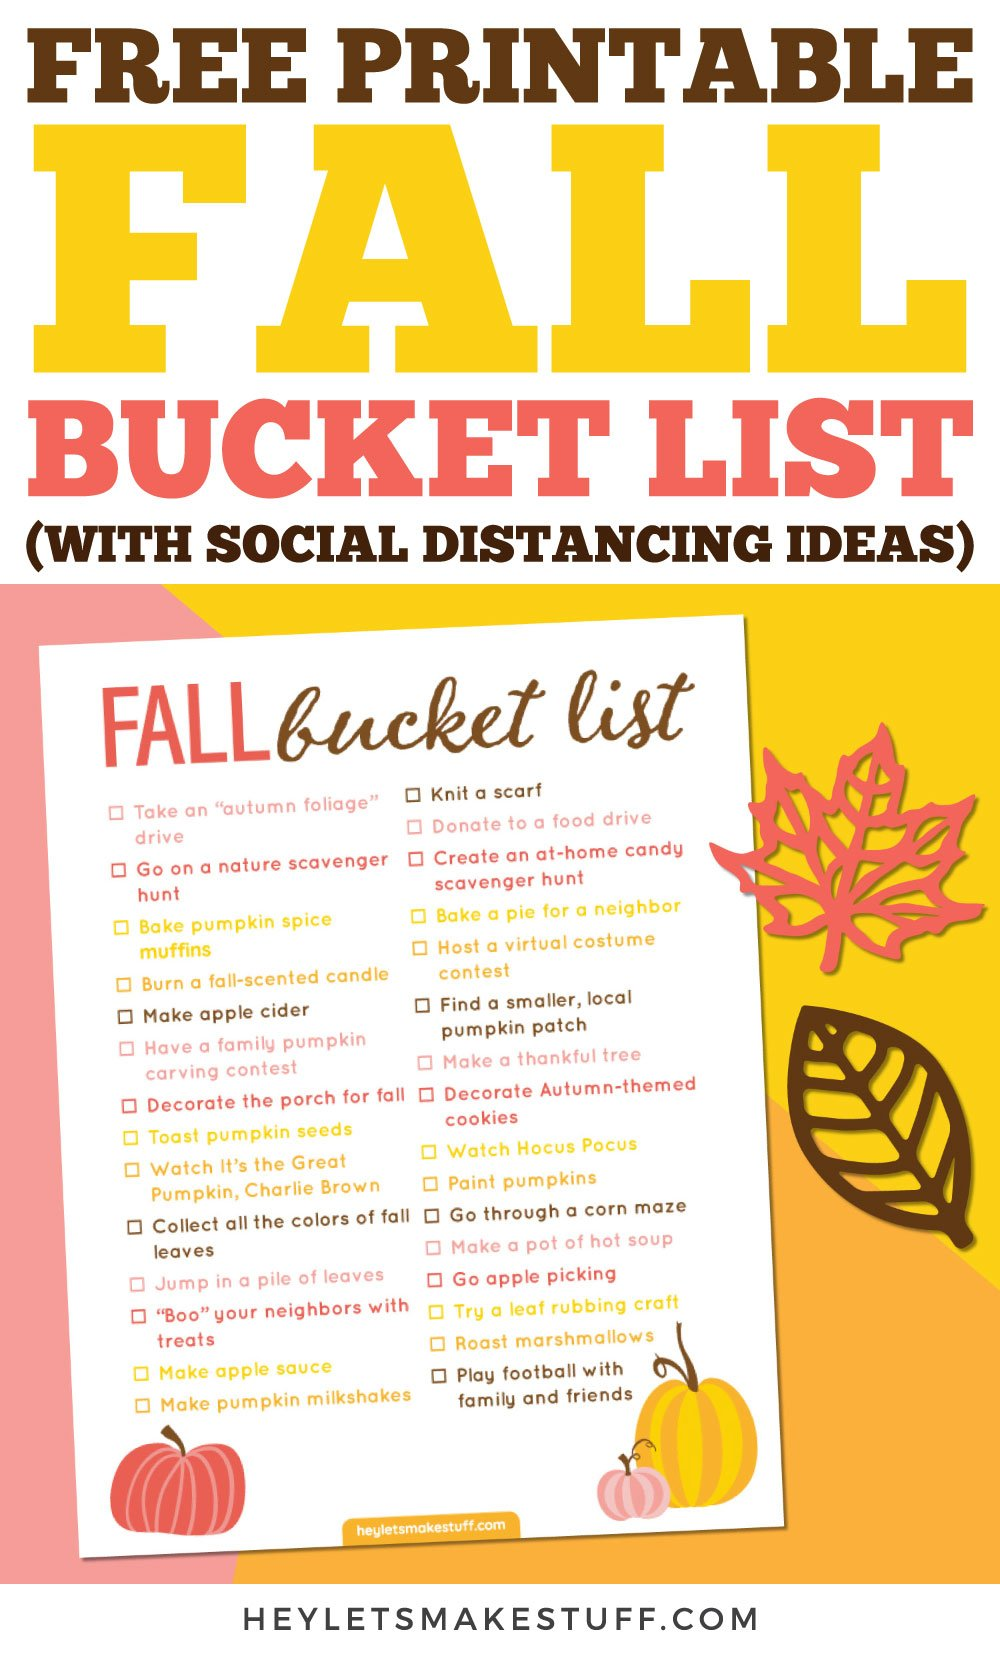 2020 Fall Bucket List With Social Distancing Ideas Hey Let S Make Stuff